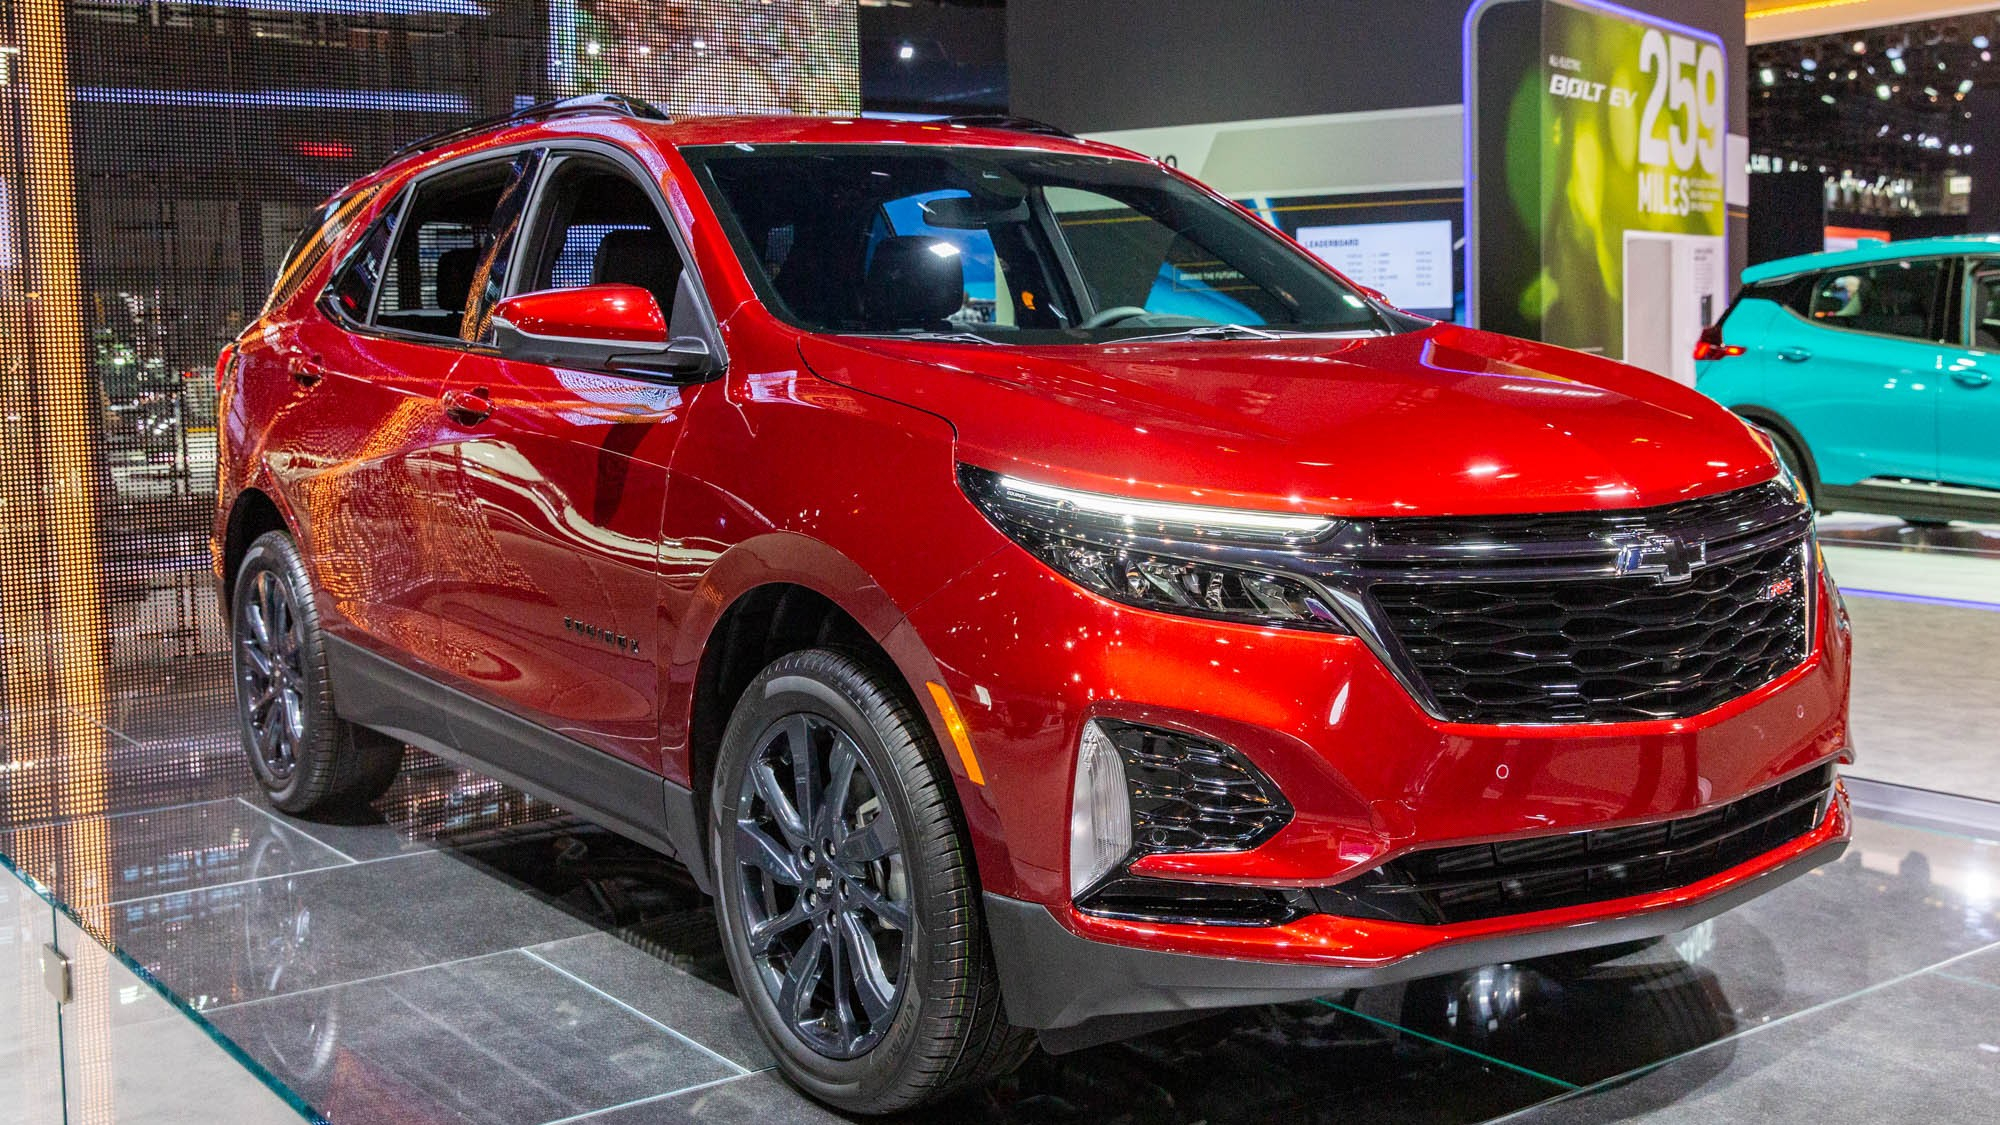 2021 Chevrolet Equinox Takes Cues From Blazer Brother 2022 Chevrolet Blazer Trim Levels, Transmission, Test Drive